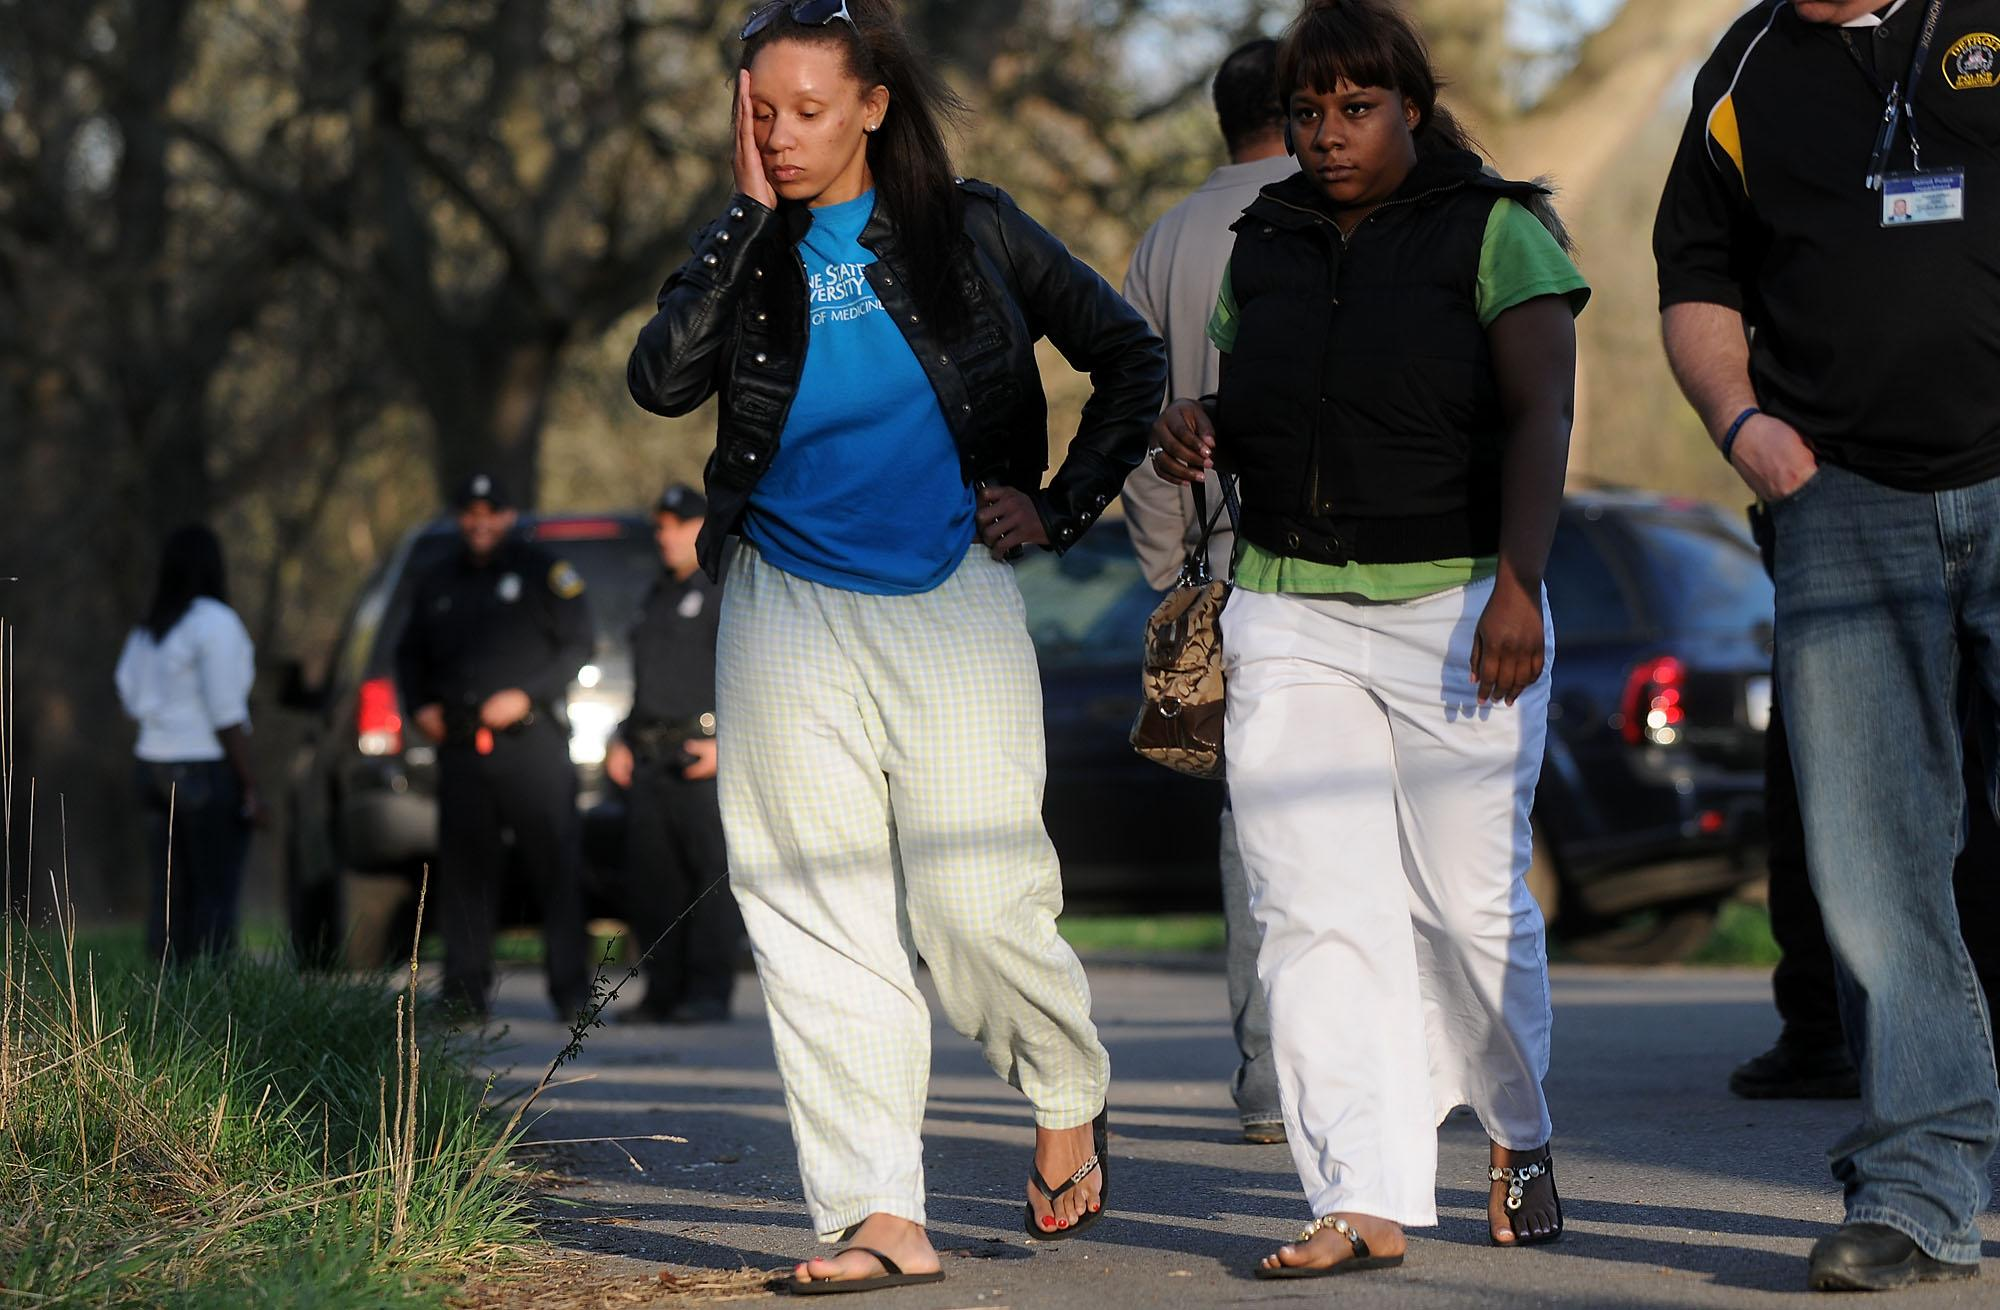 Krystal Brown, left, cousin of Abreeya Brown, leaves the scene where to bodies of two women were found after talking with police, with another relative of the missing Abreeya Brown, Sunday, March 25, 2012. The bodies are likely the remains of two housemates, Abreeya Brown, 18, and Ashley Conaway, 21, who witnesses claim were forced into a car trunk at gunpoint nearly a month ago, police said. (AP Photo/The Detroit News, Elizabeth Conley) DETROIT FREE PRESS OUT; HUFFINGTON POST OUT